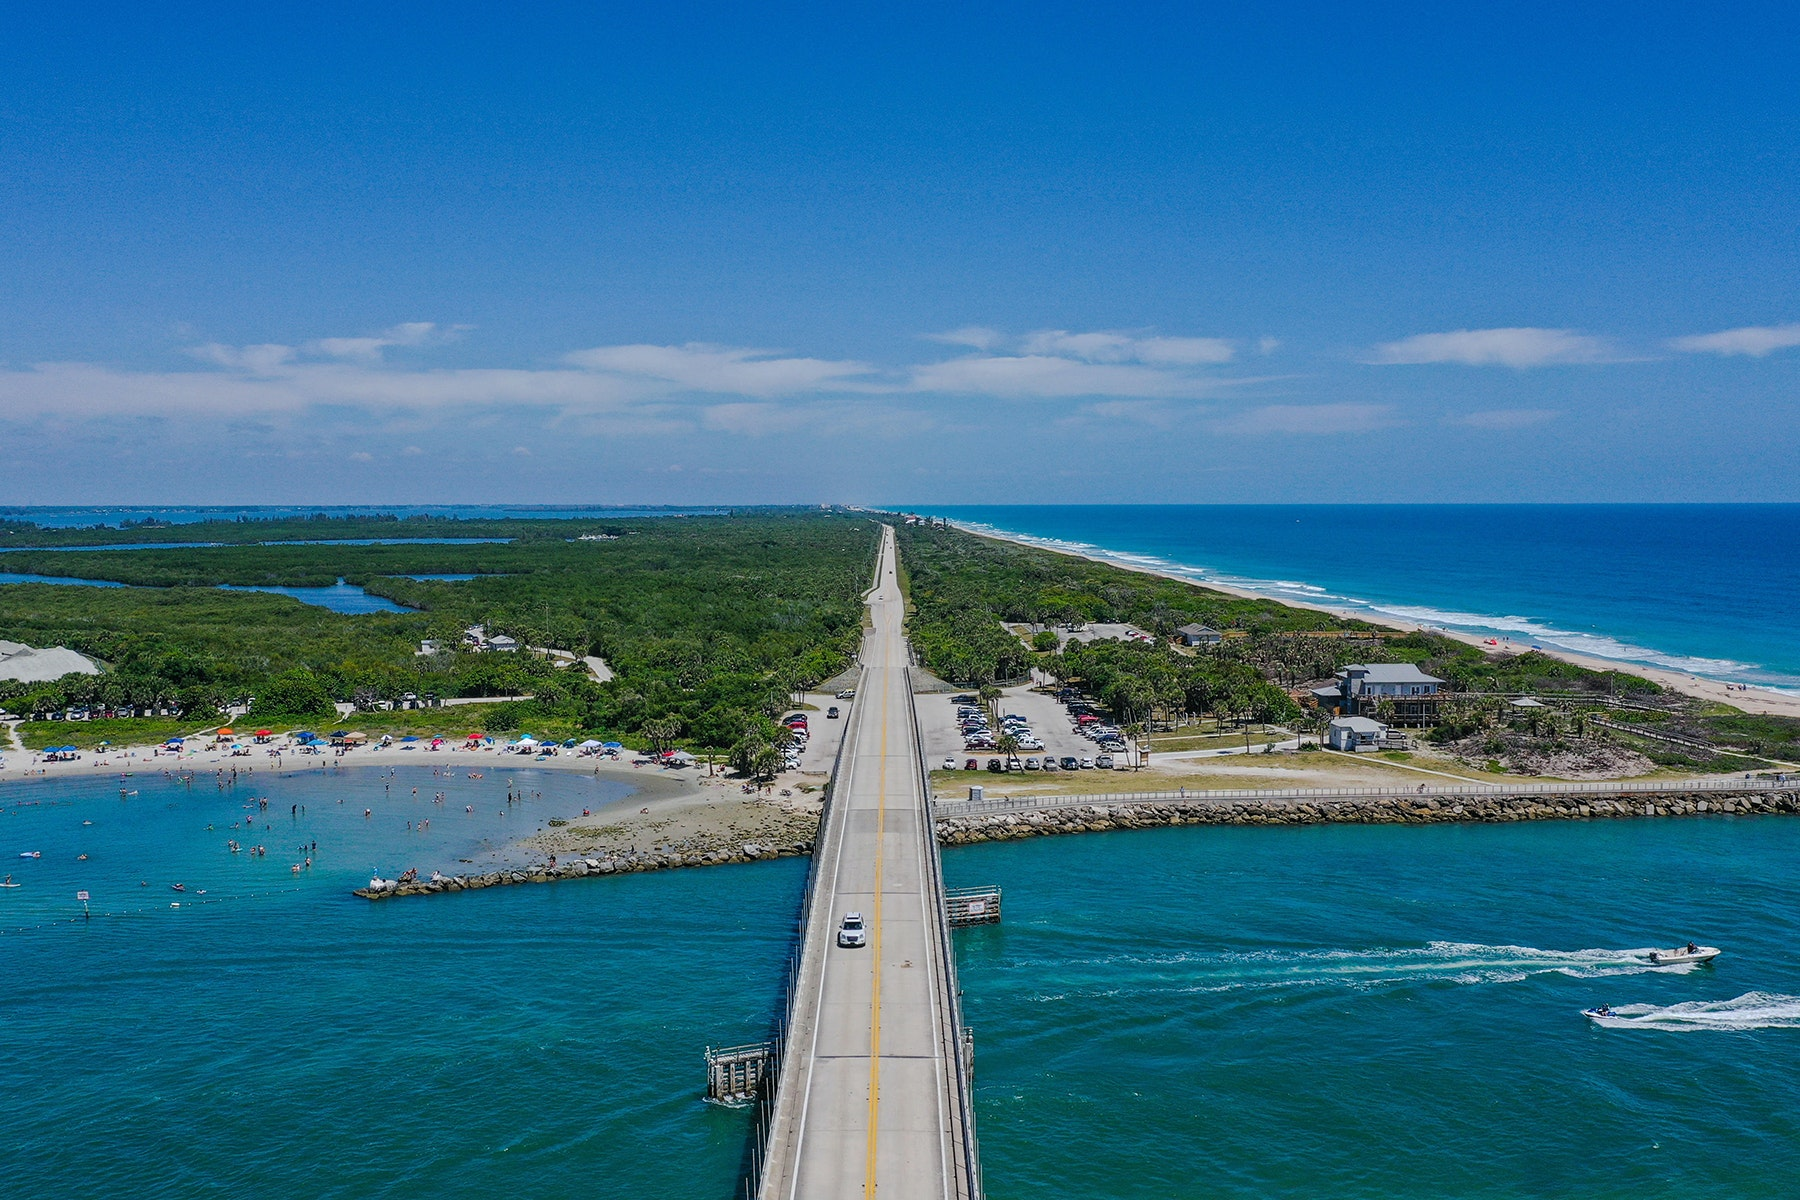 Aerial view of Sebastian Inlet over bridge looking North